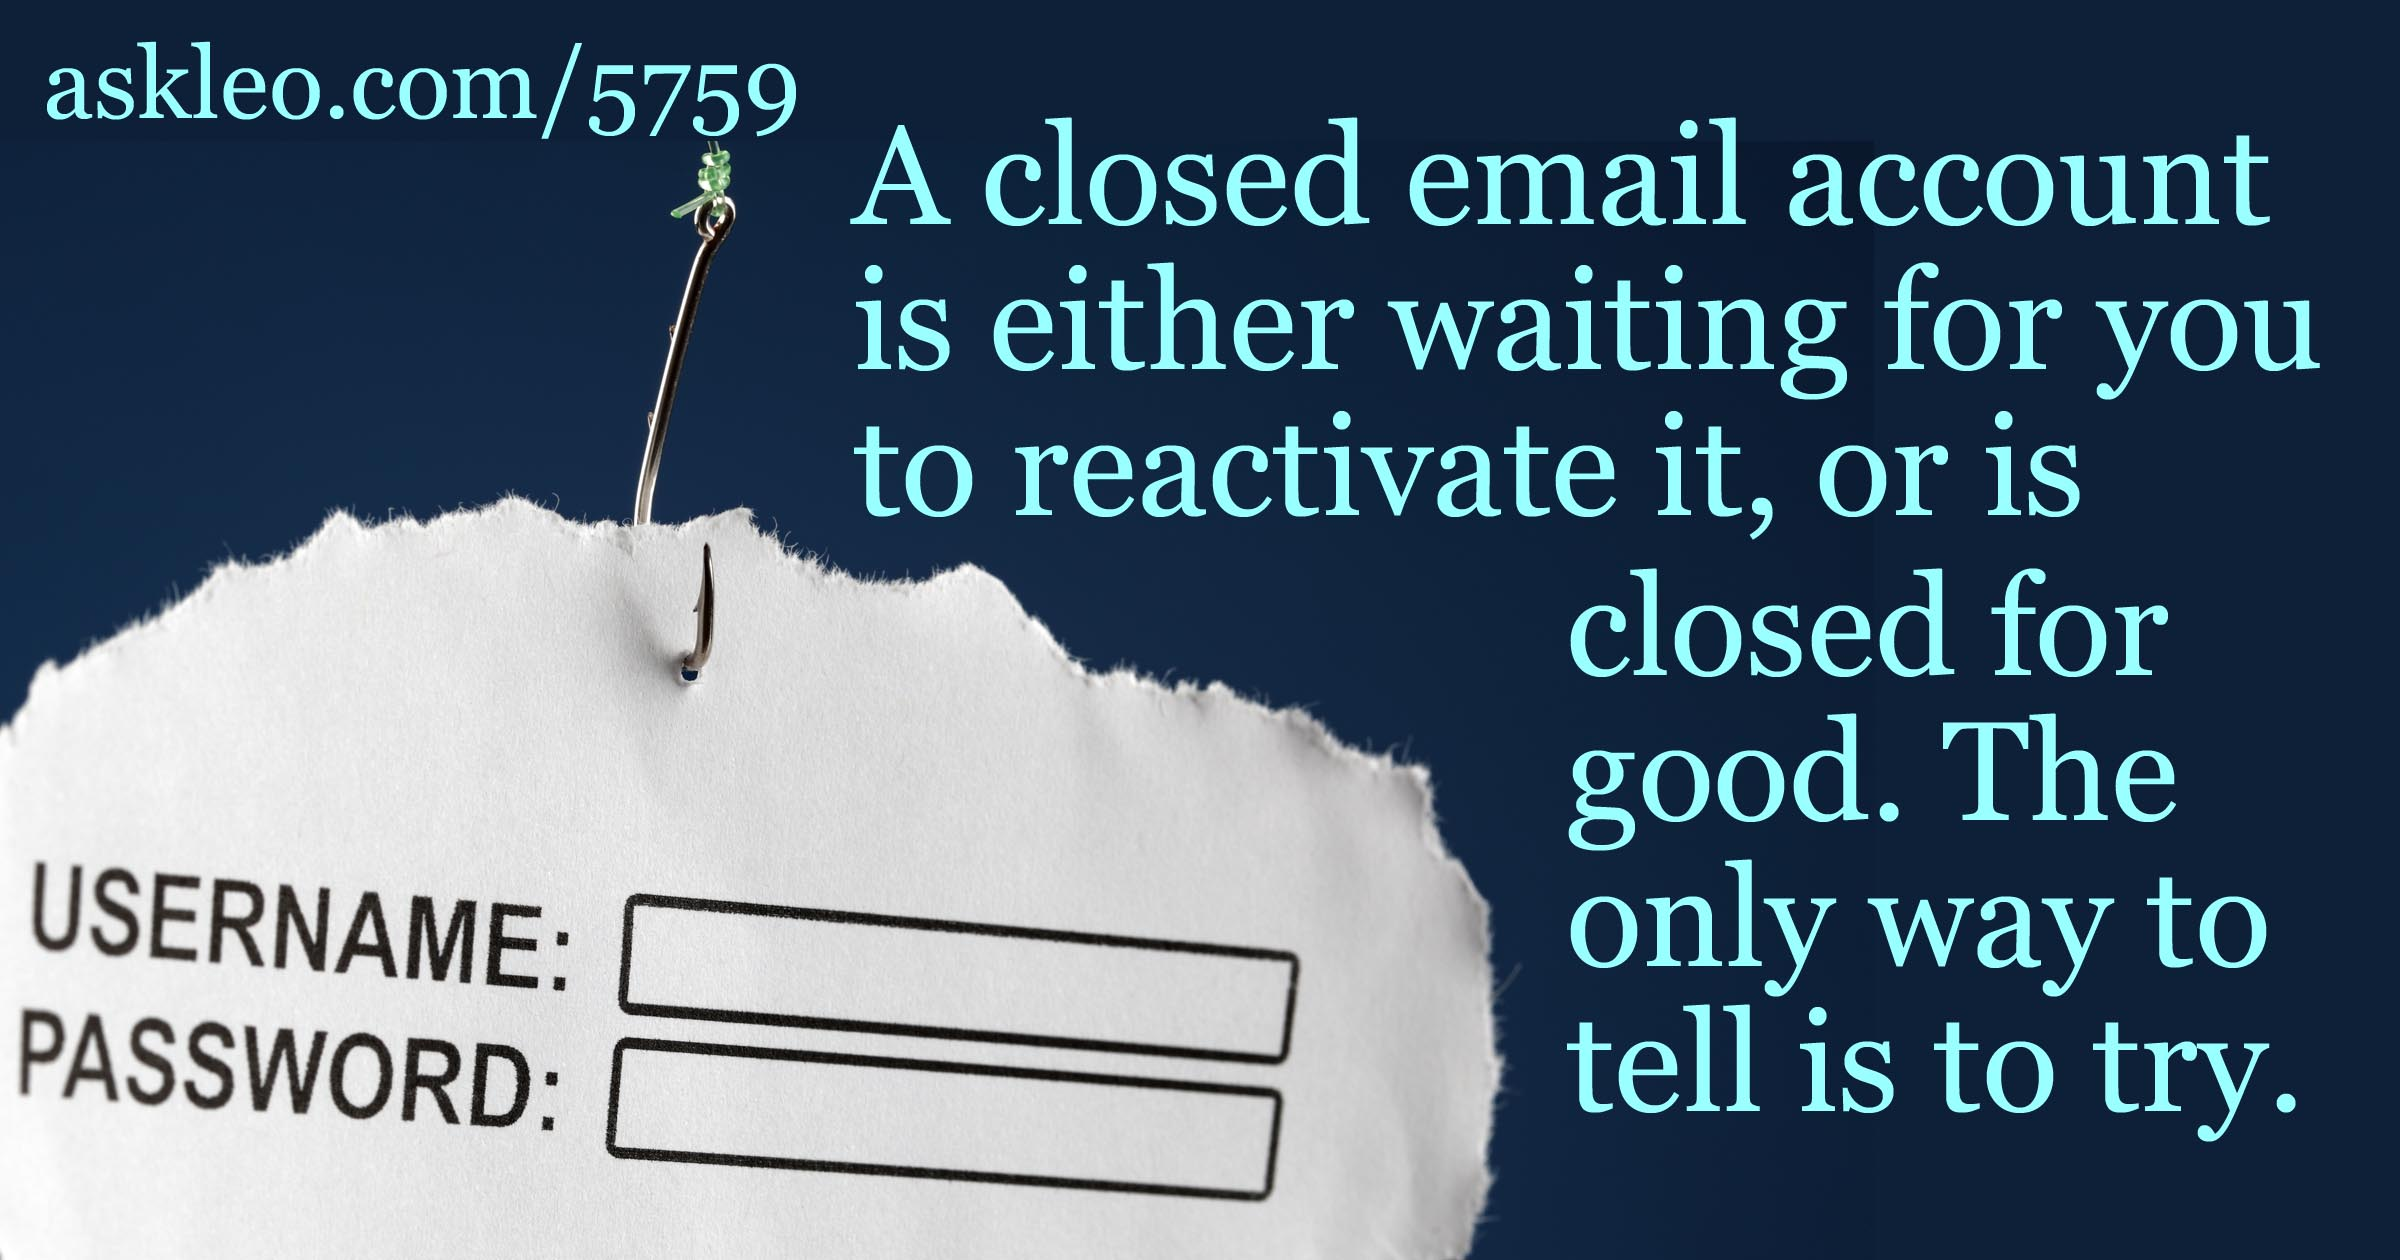 How Do I Reactivate an Old Email Account?